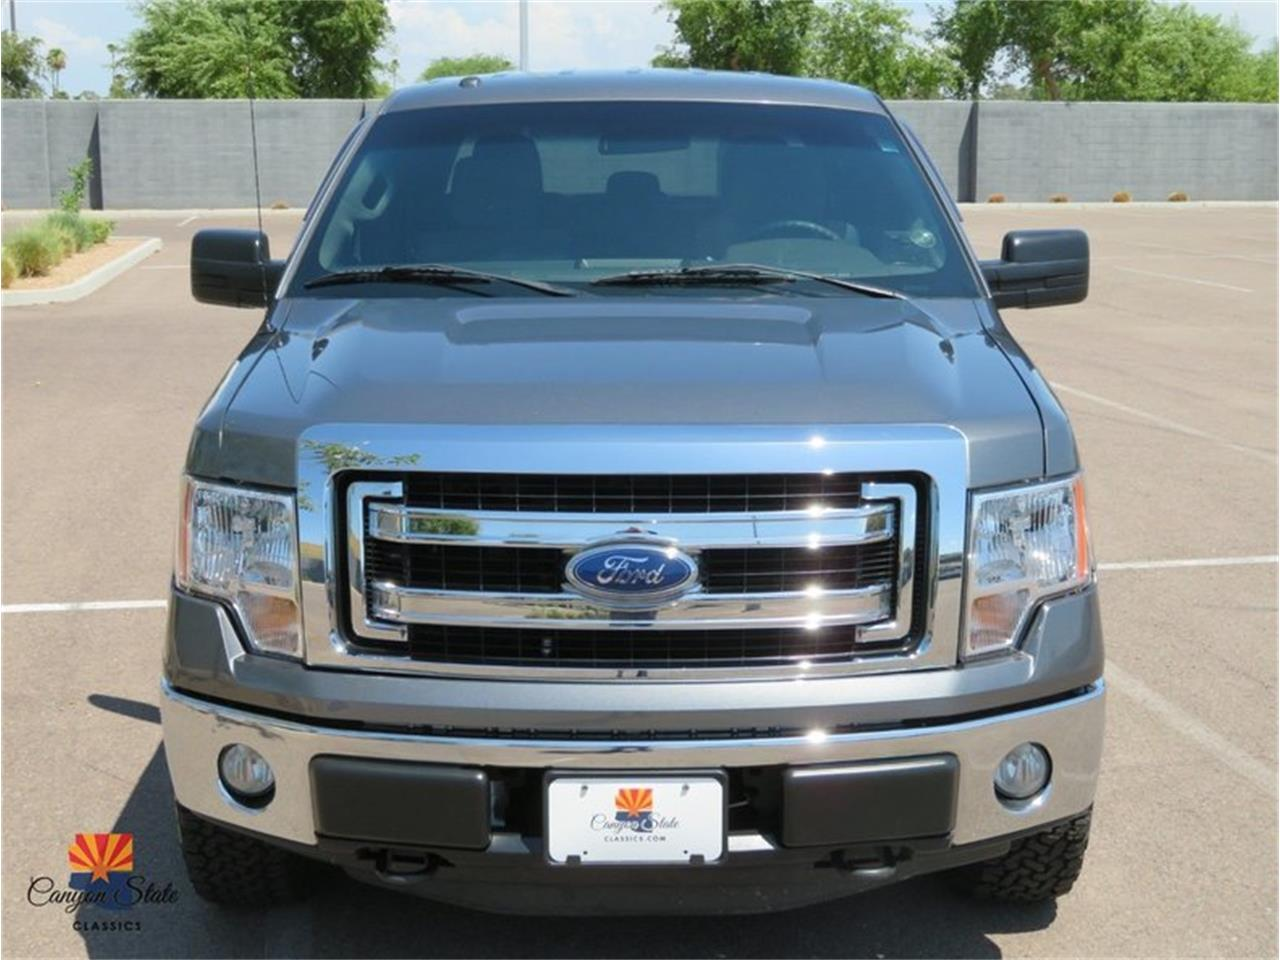 2014 Ford F150 for sale in Tempe, AZ – photo 23